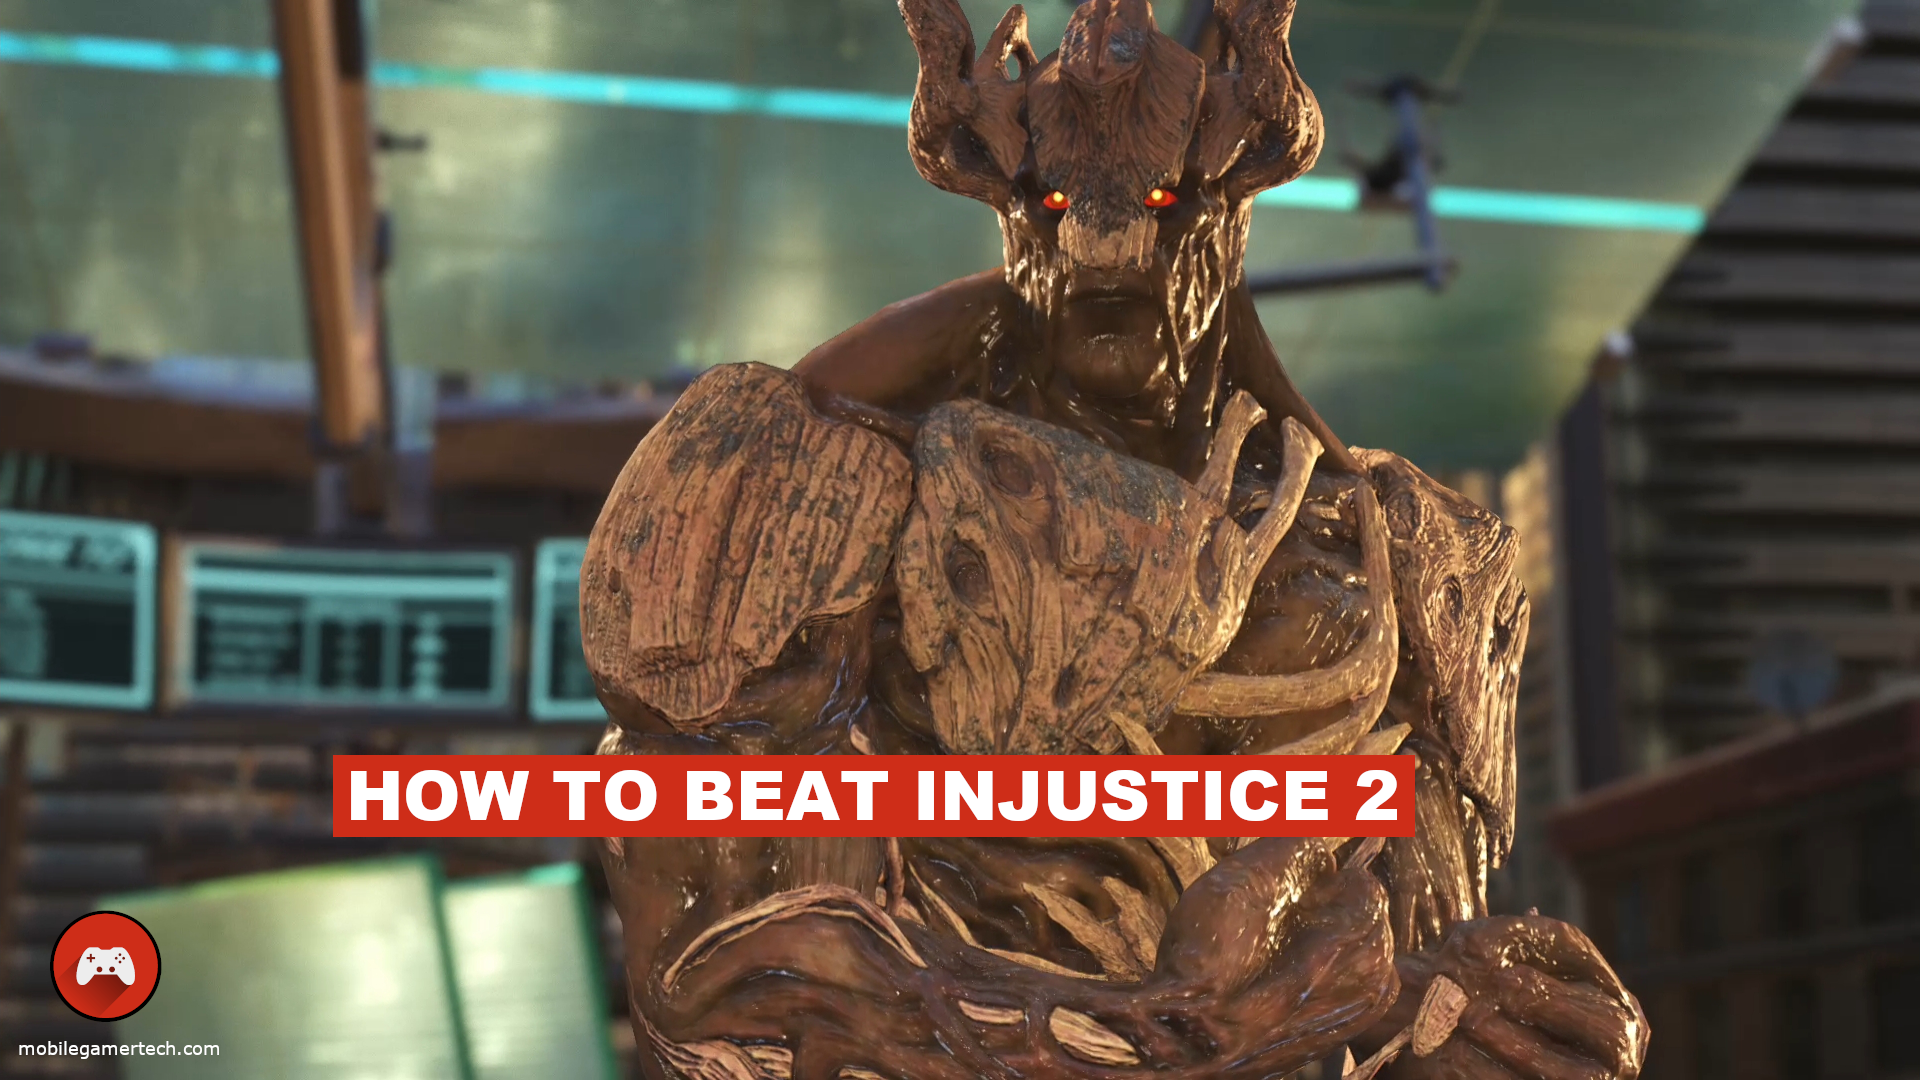 How To Beat Injustice 2